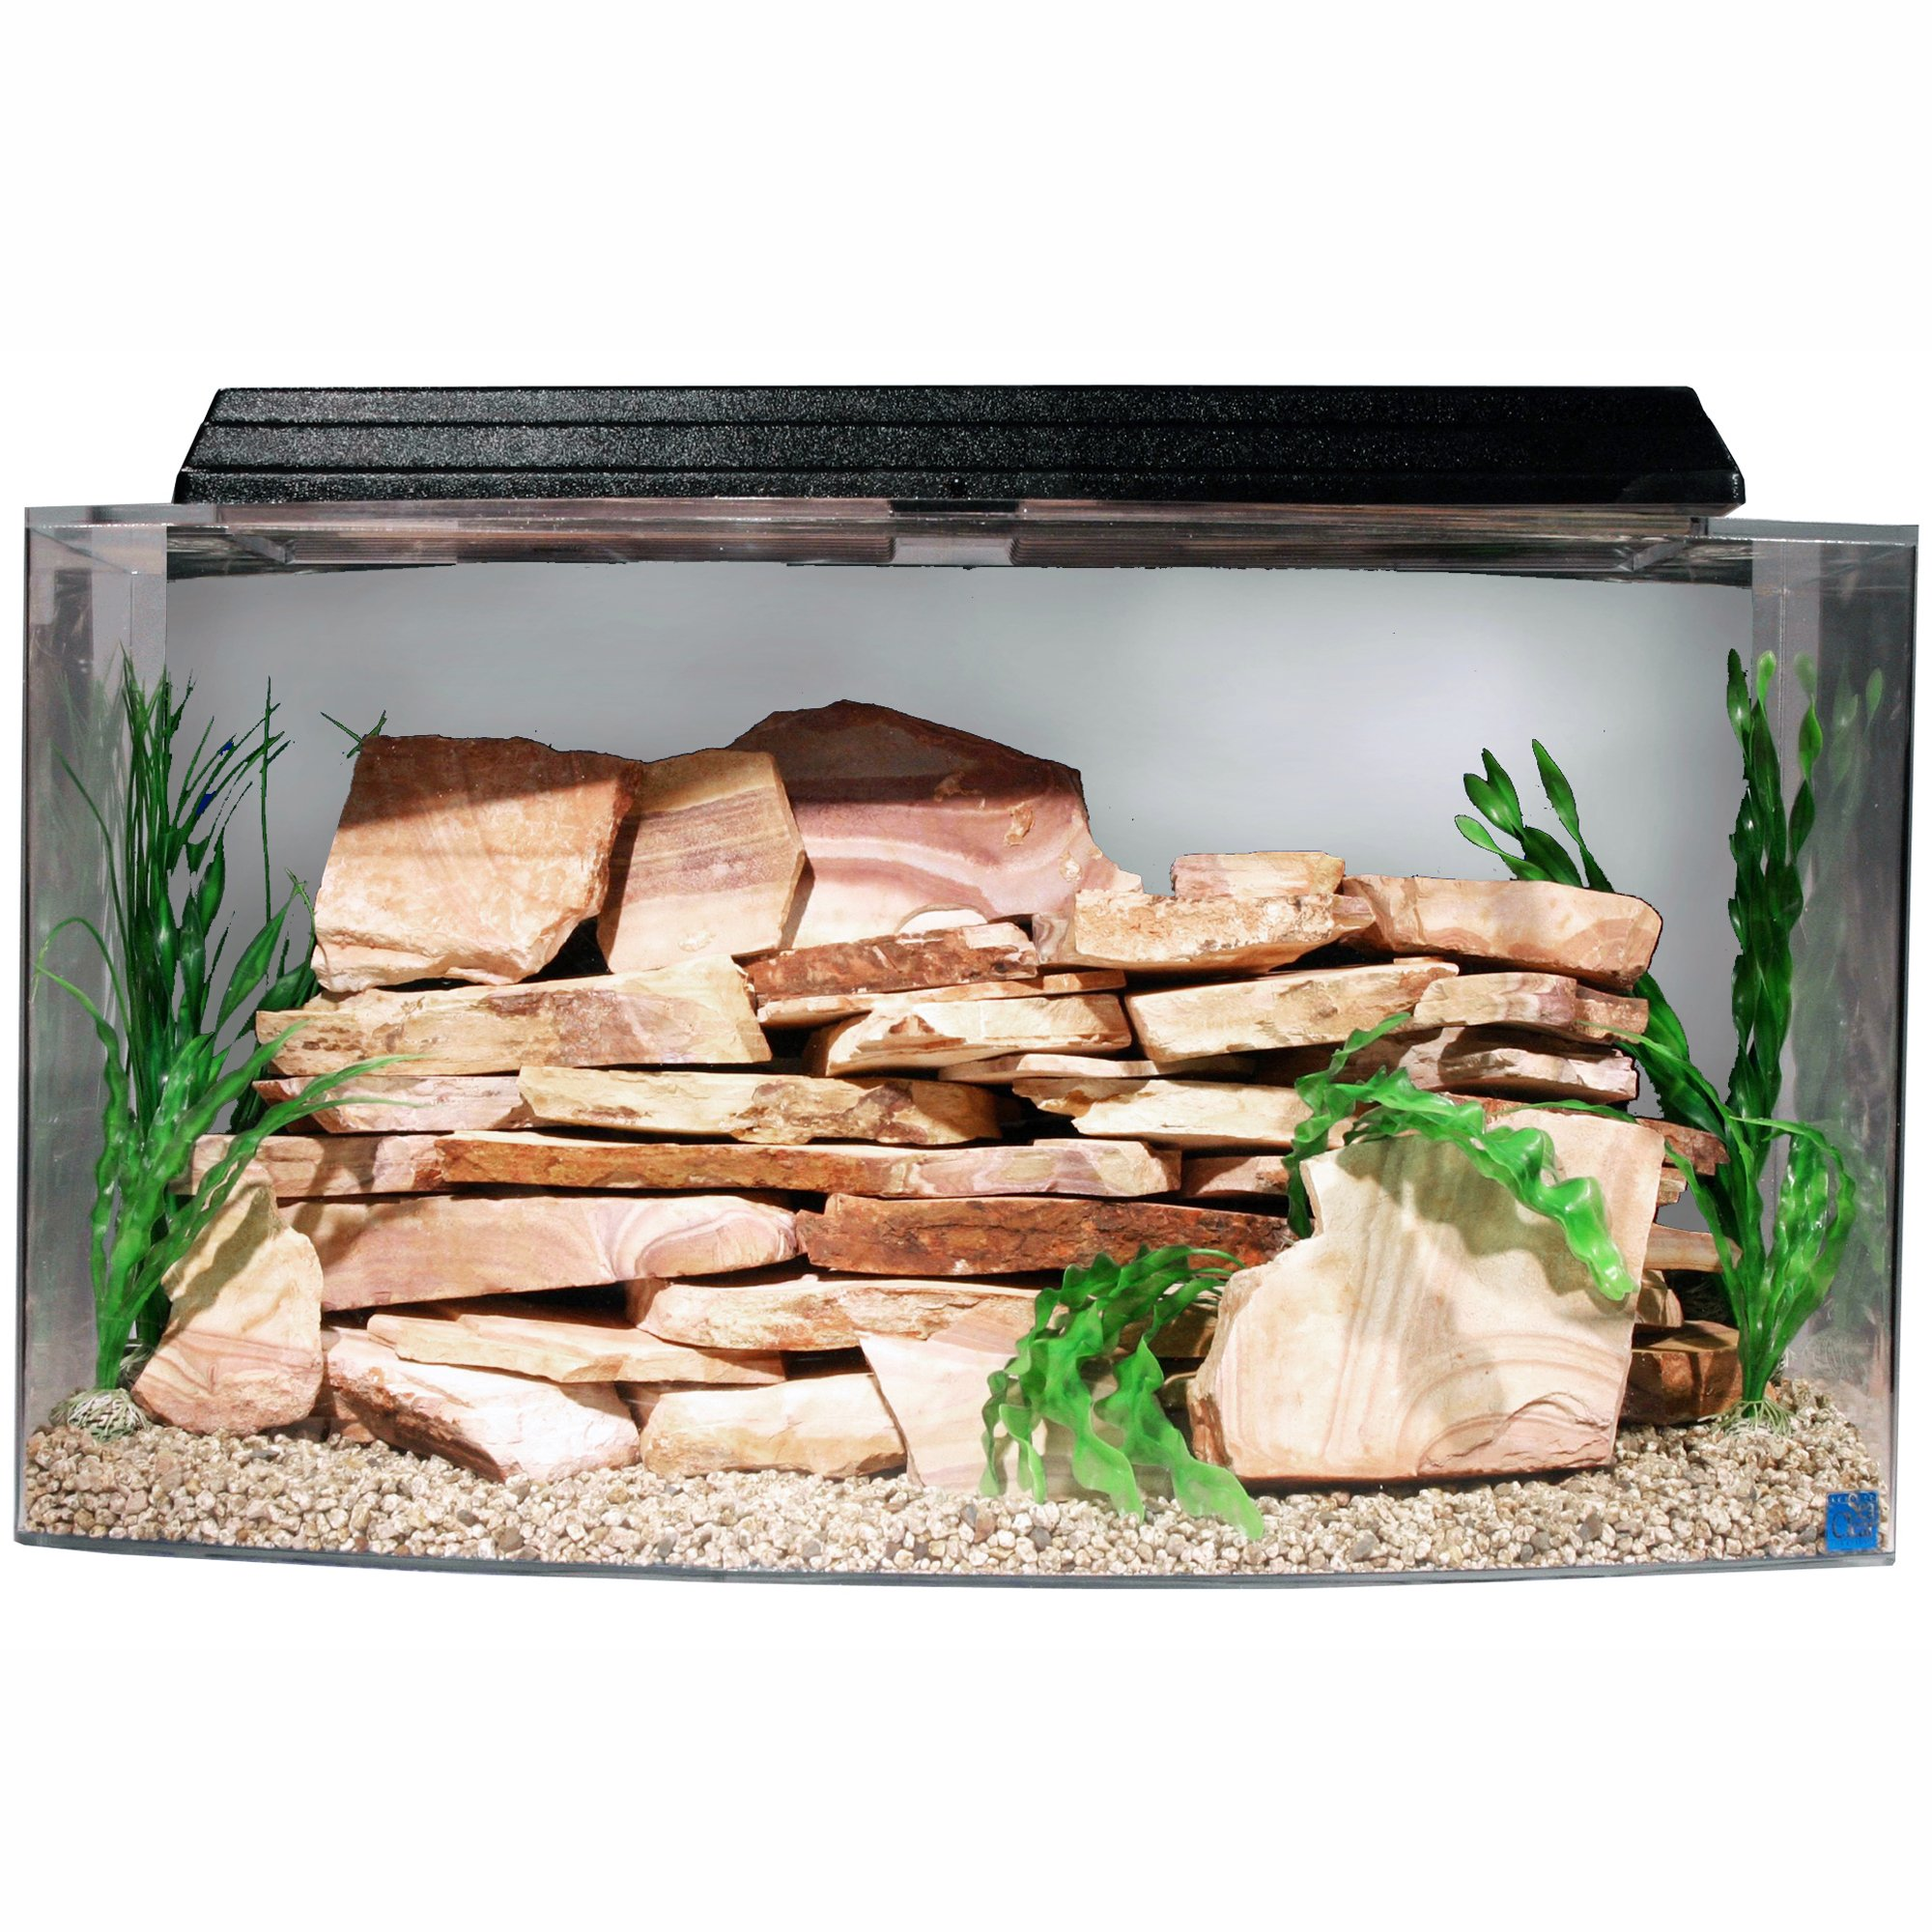 SeaClear Bowfront 46 Gallon Aquarium Combos in Clear